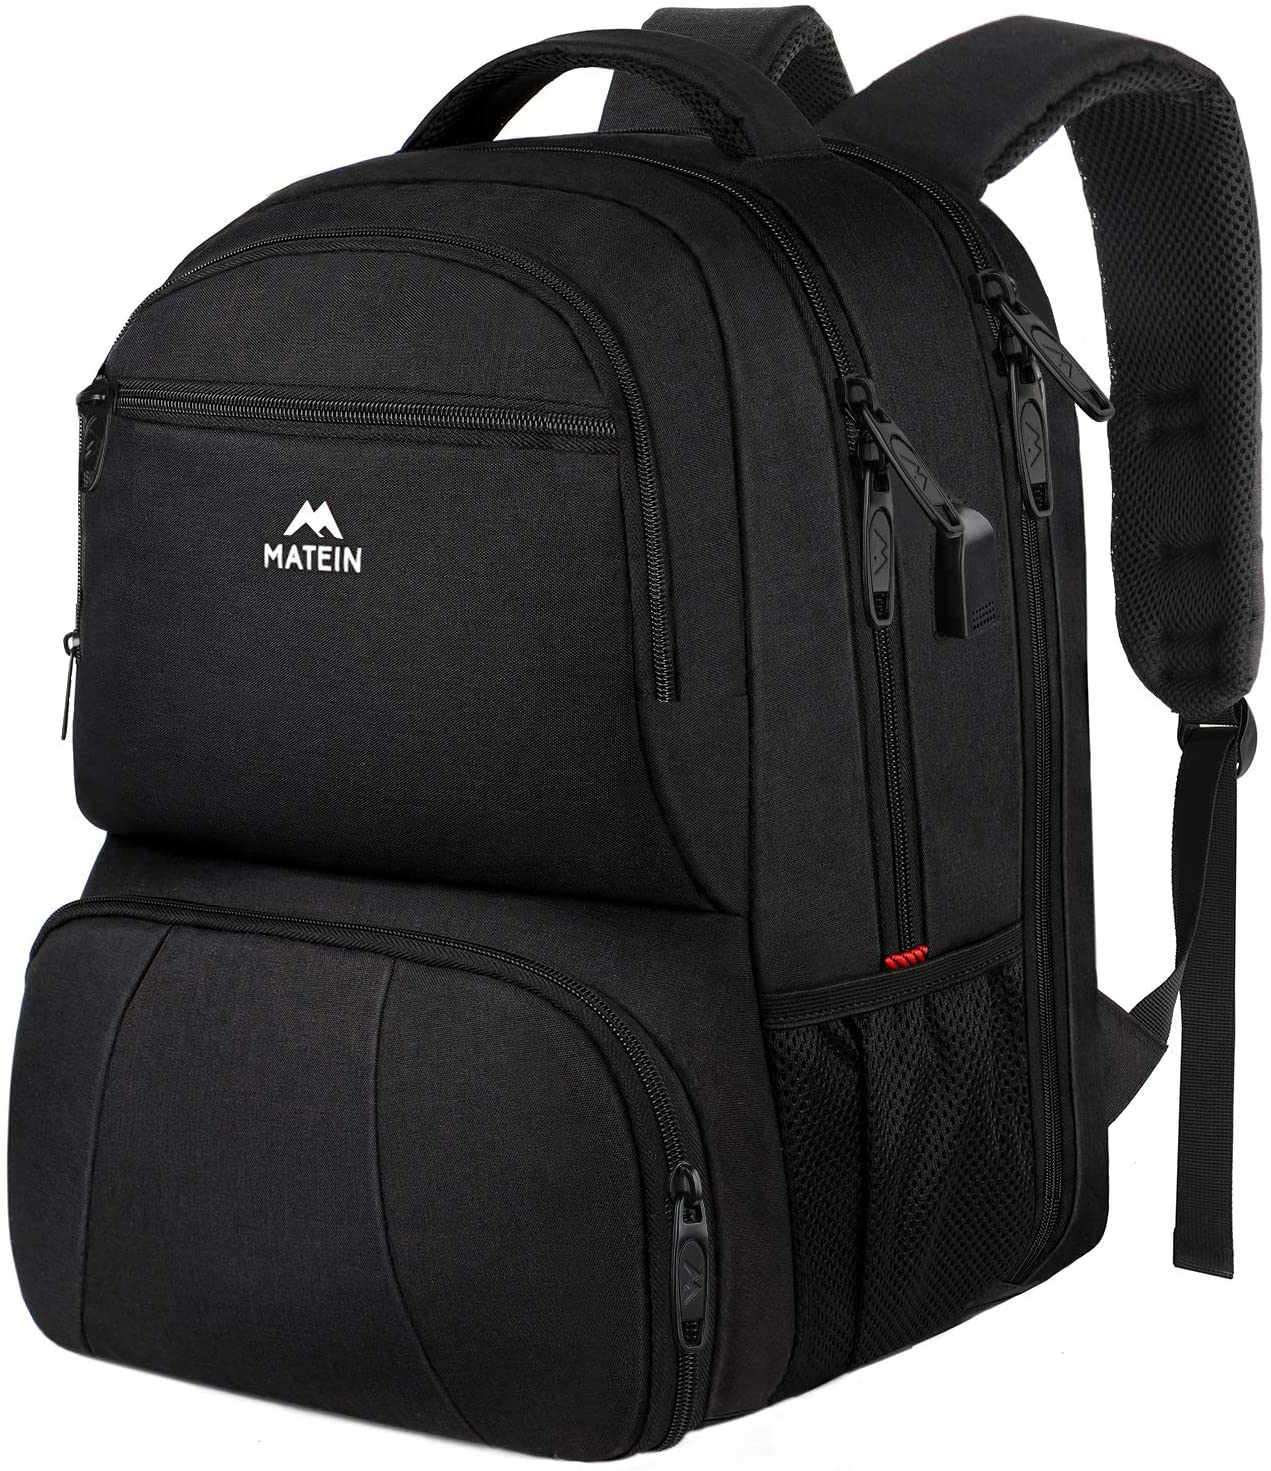 MATEIN Insulated Laptop & Backpack Cooler